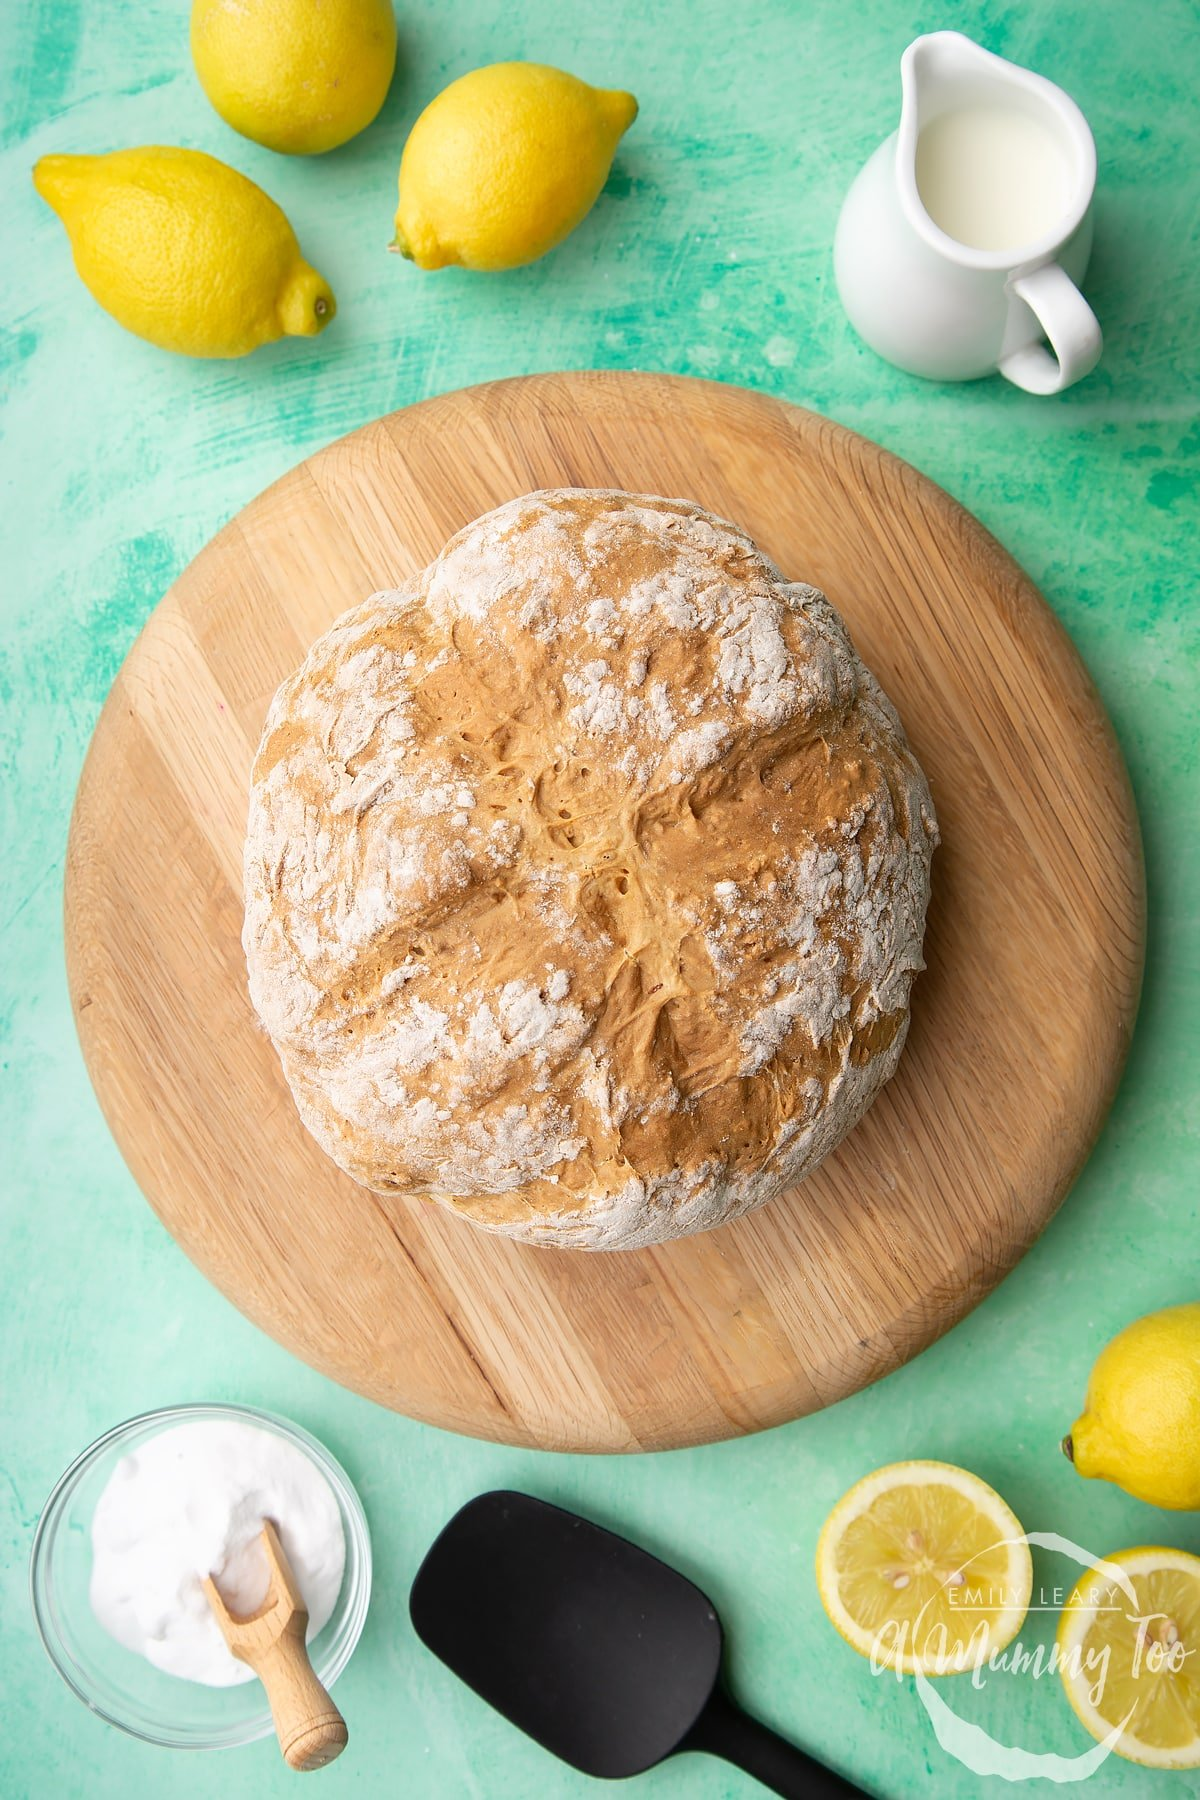 Soda bread without buttermilk on a wooden board. Lemon, milk and bicarbonate of soda are placed around the board.